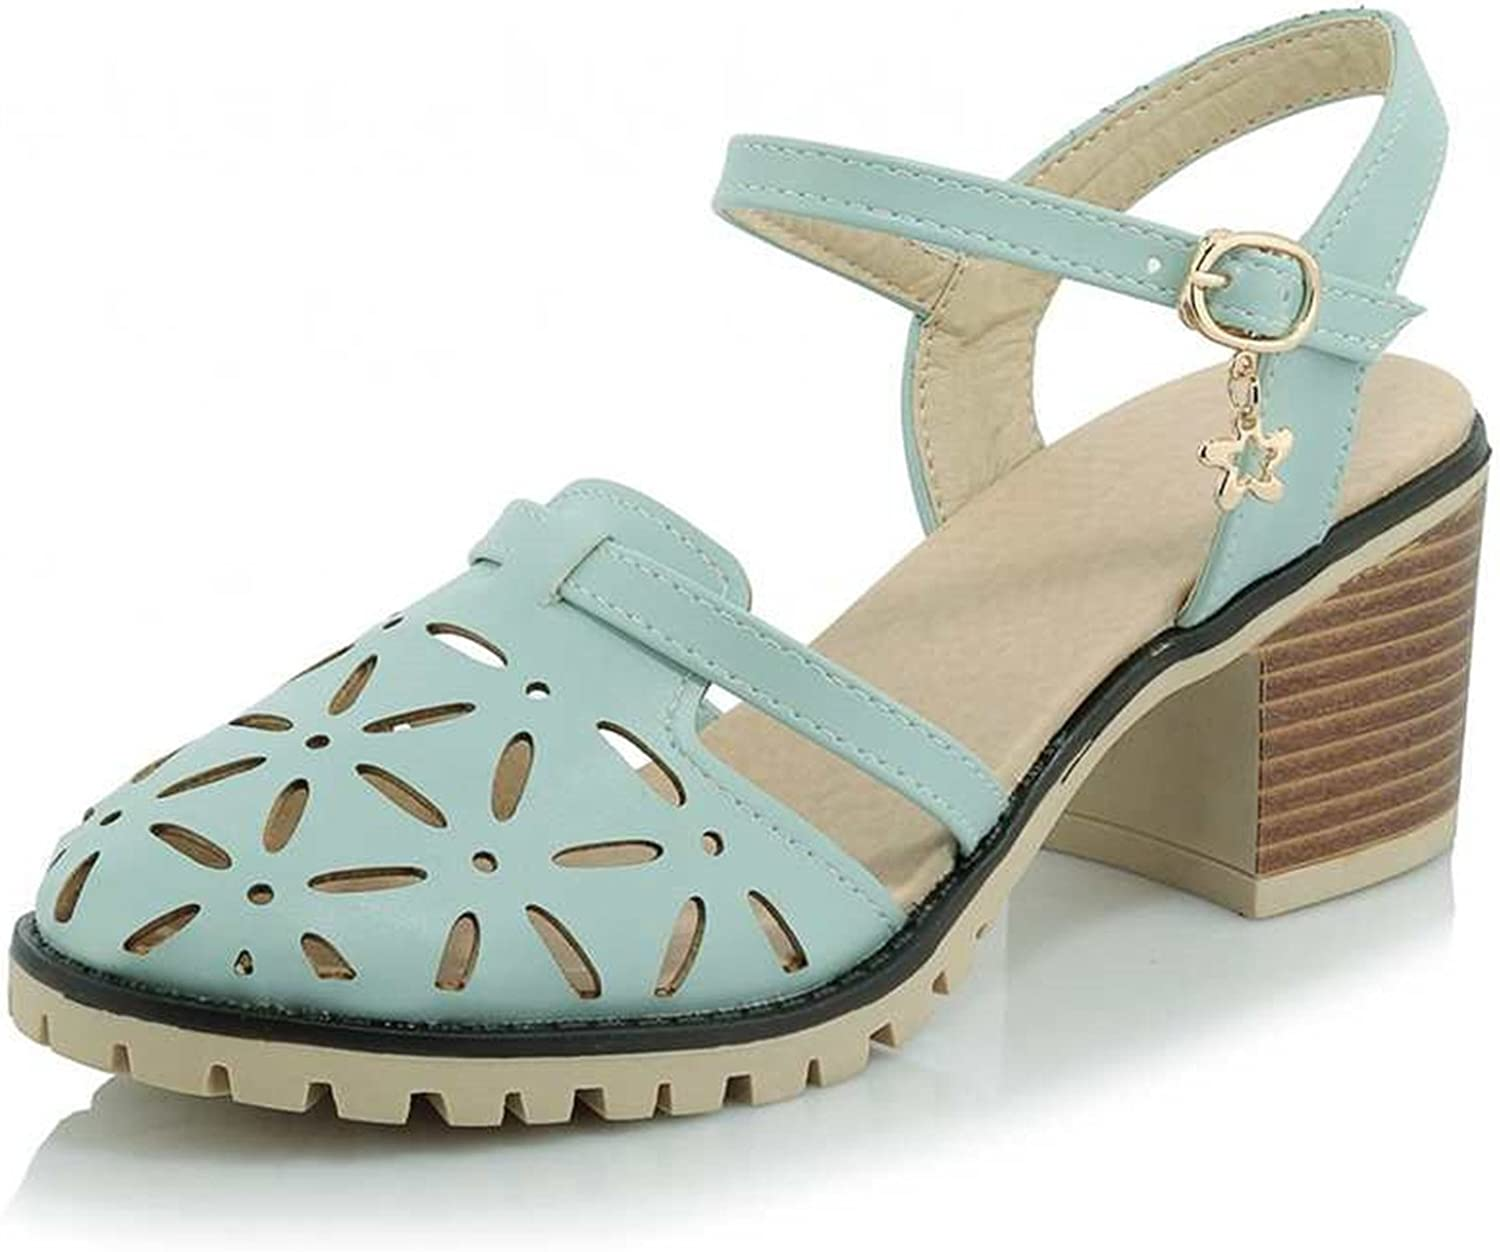 Micca Bacain New Round Toe Cut-Outs Platform Chunky Heels Women Buckle Sandals Summer Casual Plus Size 34-43